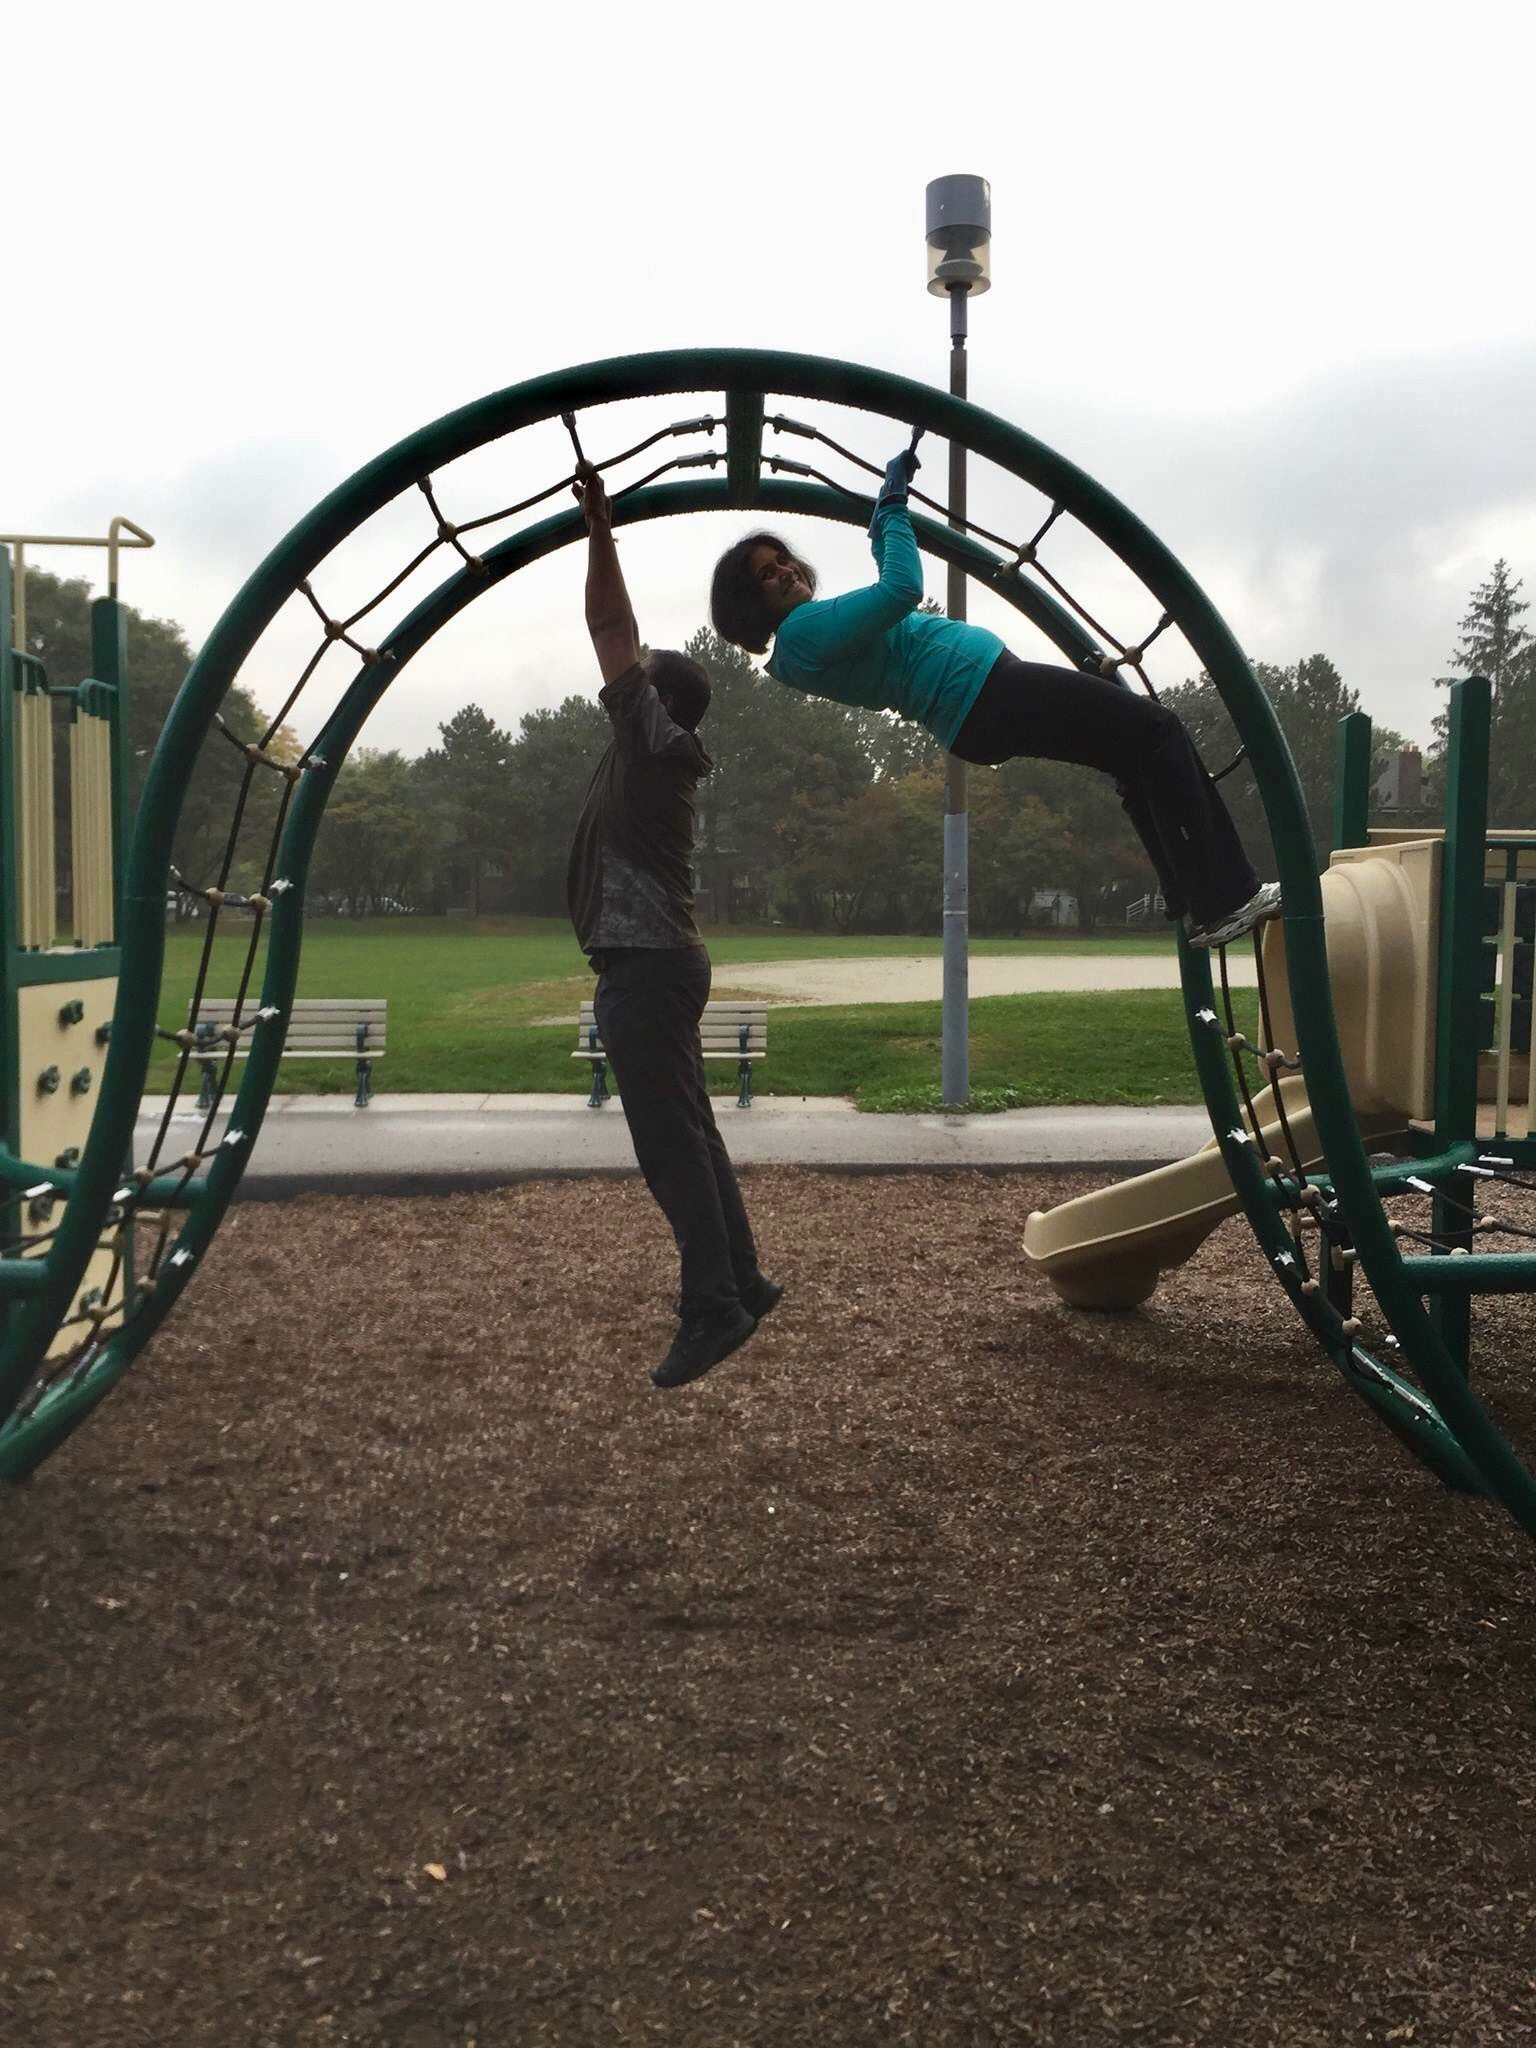 3 ways adult play dates fight social isolation any time of year